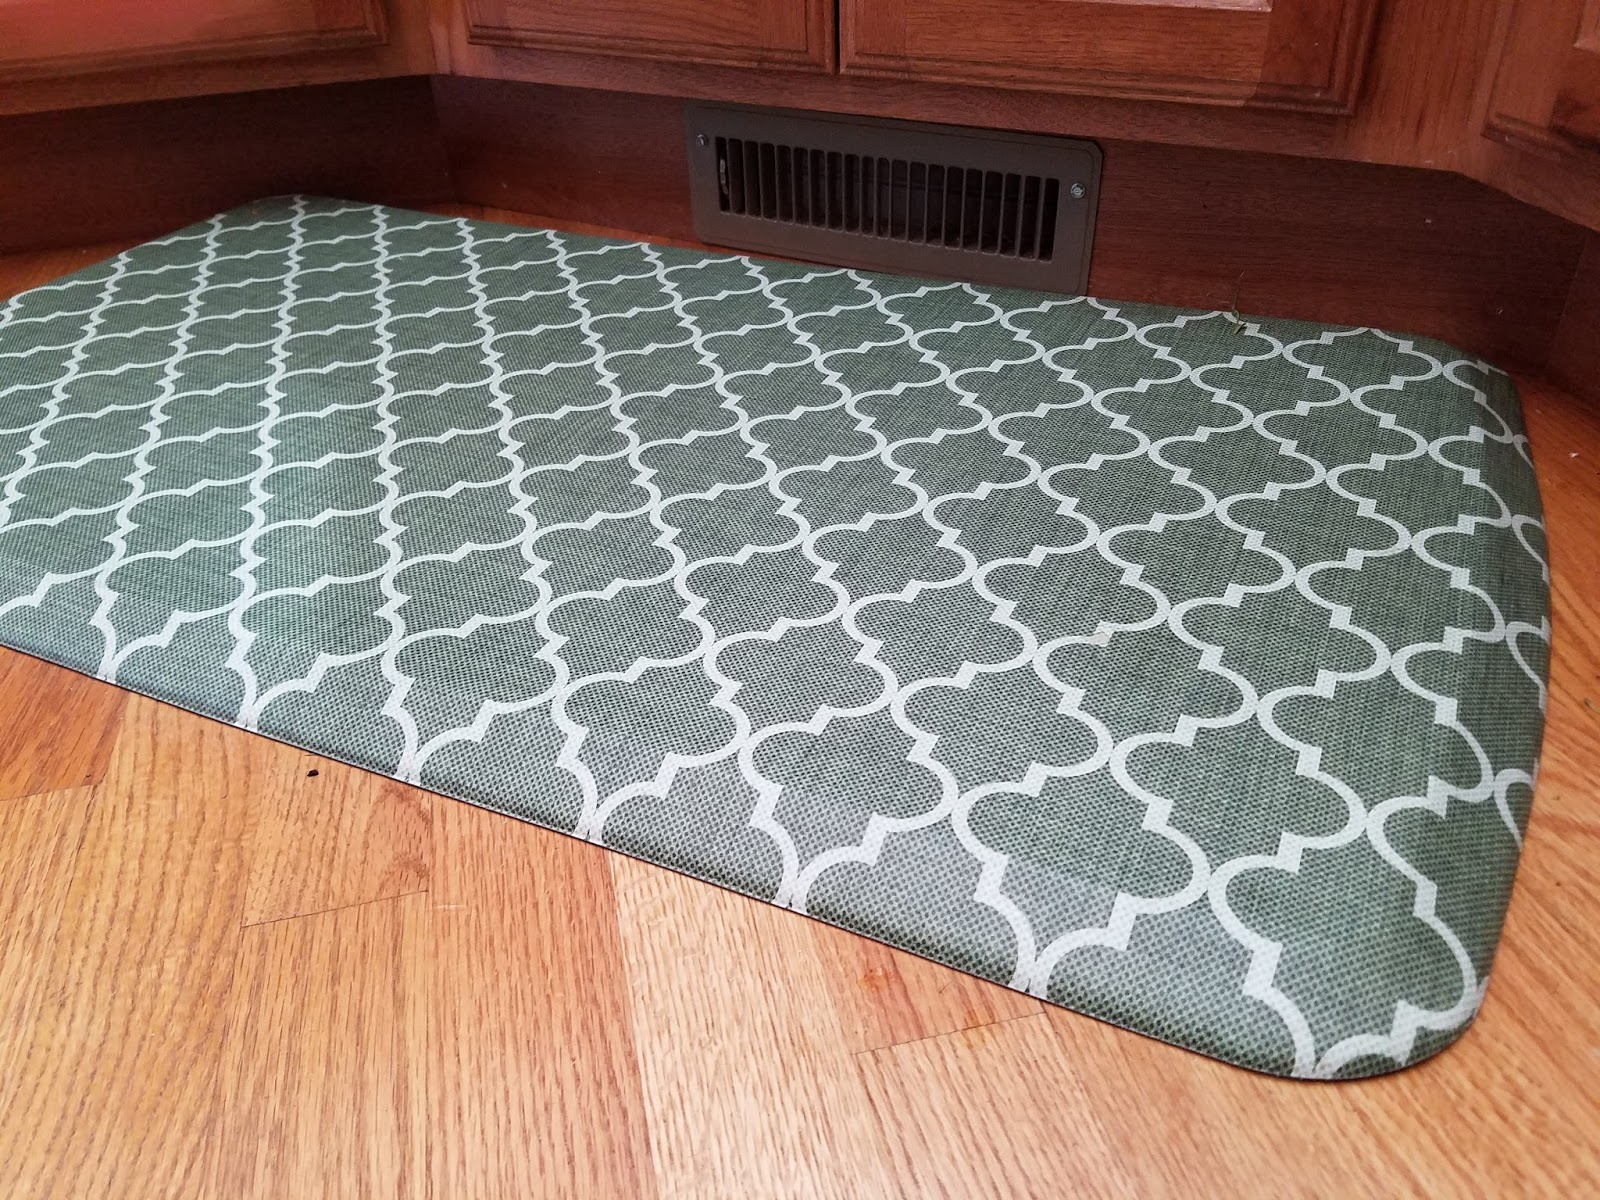 Cooking With Julian: GelPro Kitchen Floor Mat Review